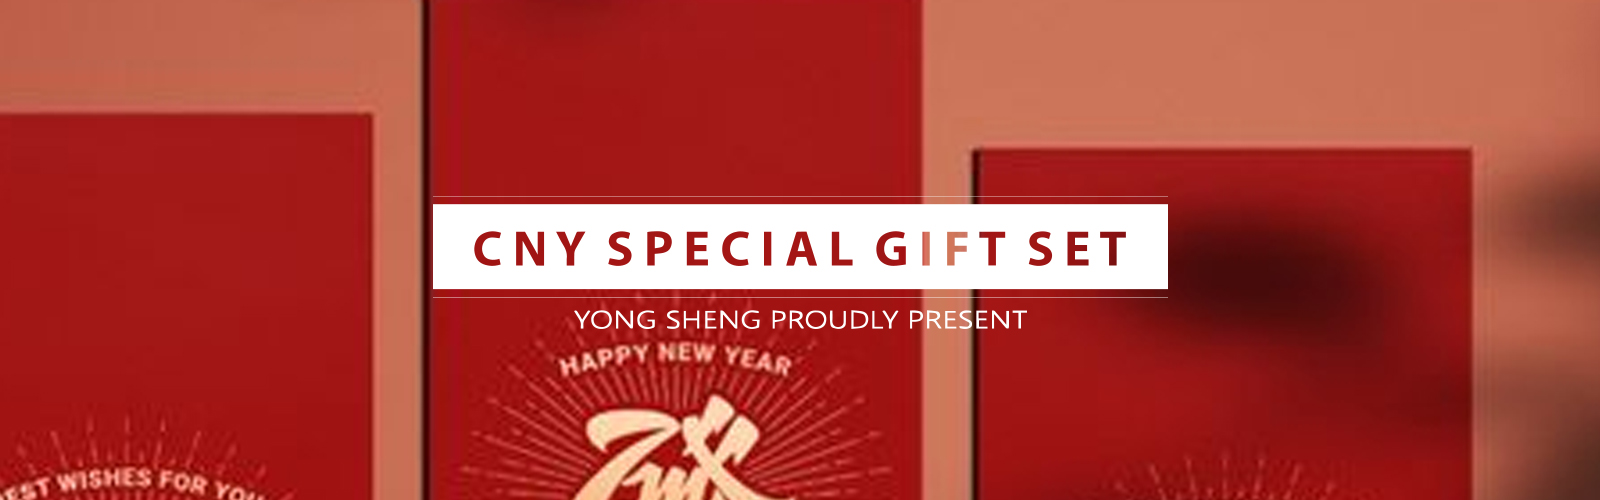 CNY Special Gift Set_Online